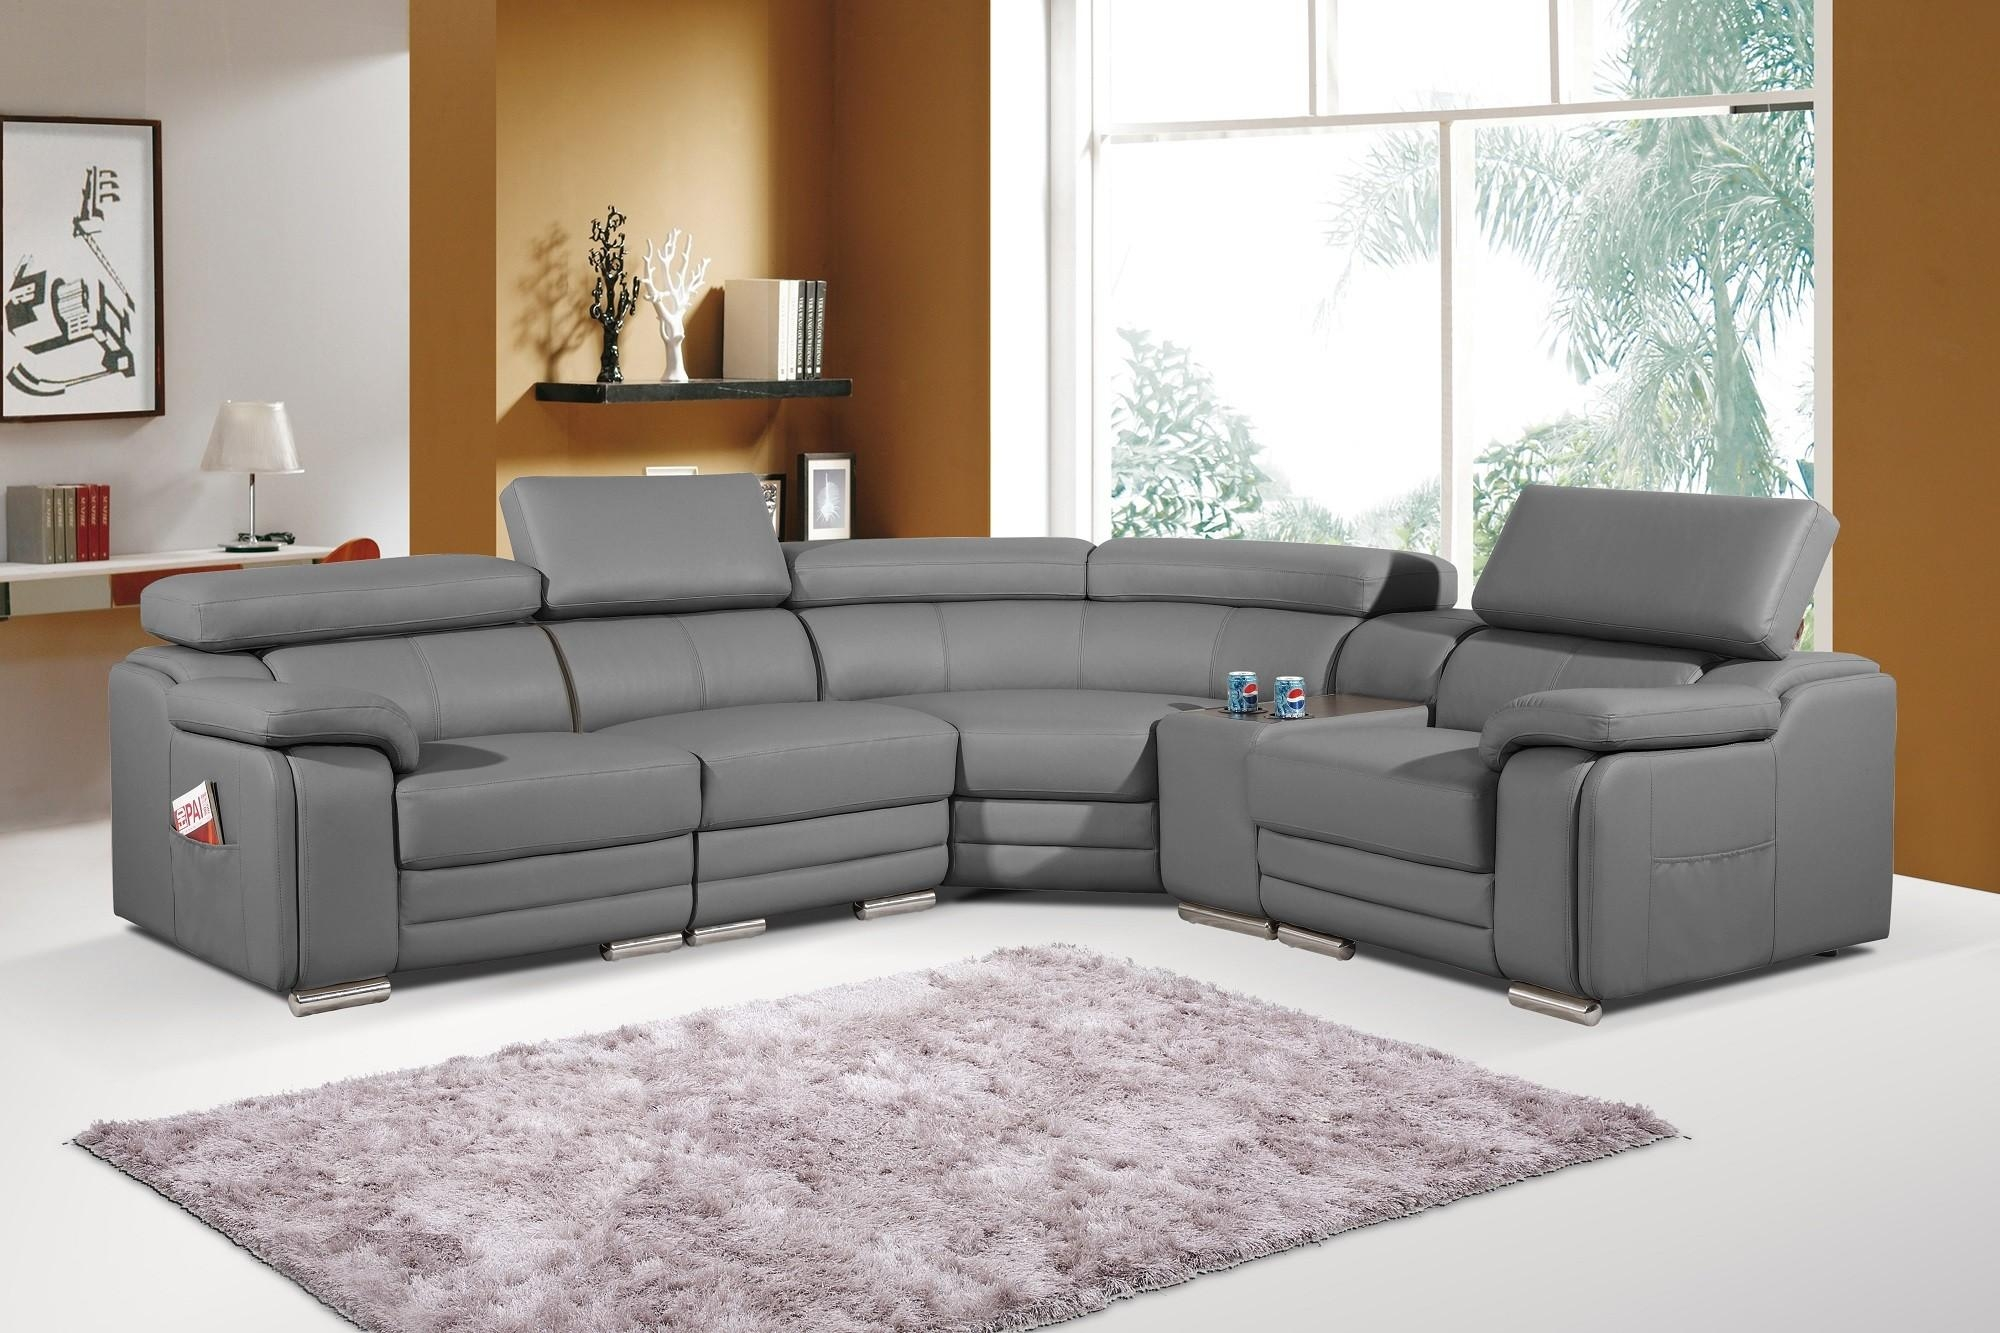 Sofas Center : Leather Corner Sofas Sofa Uk Clearanceleather Within Leather Corner Sofas (View 8 of 20)